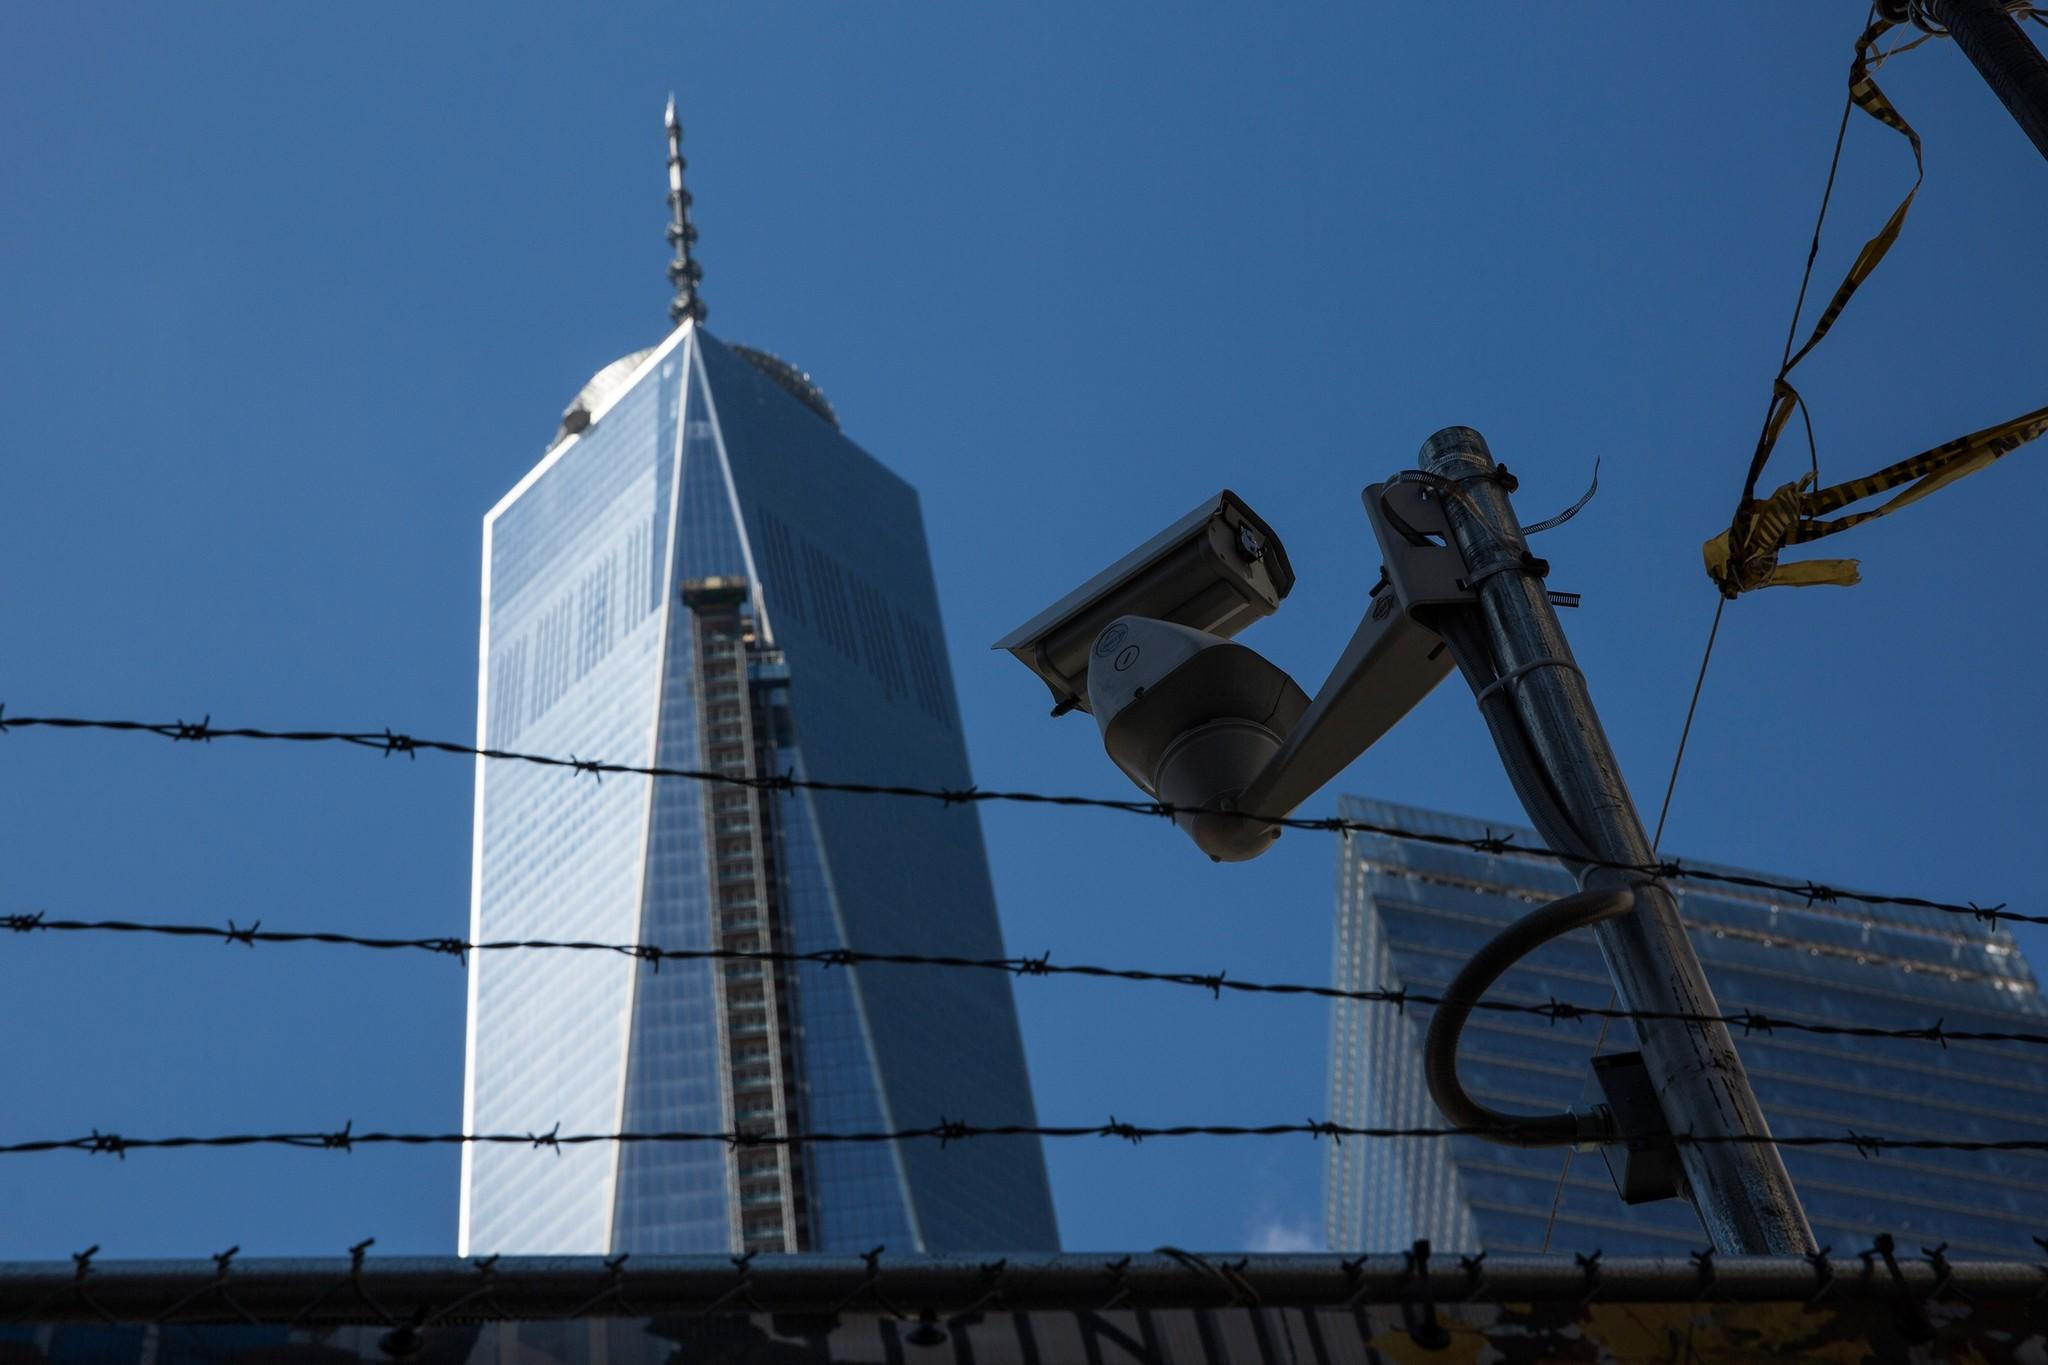 A security camera is positioned next to a barbed wire fence outside Ground Zero and One World Trade Center in New York City on March 21.